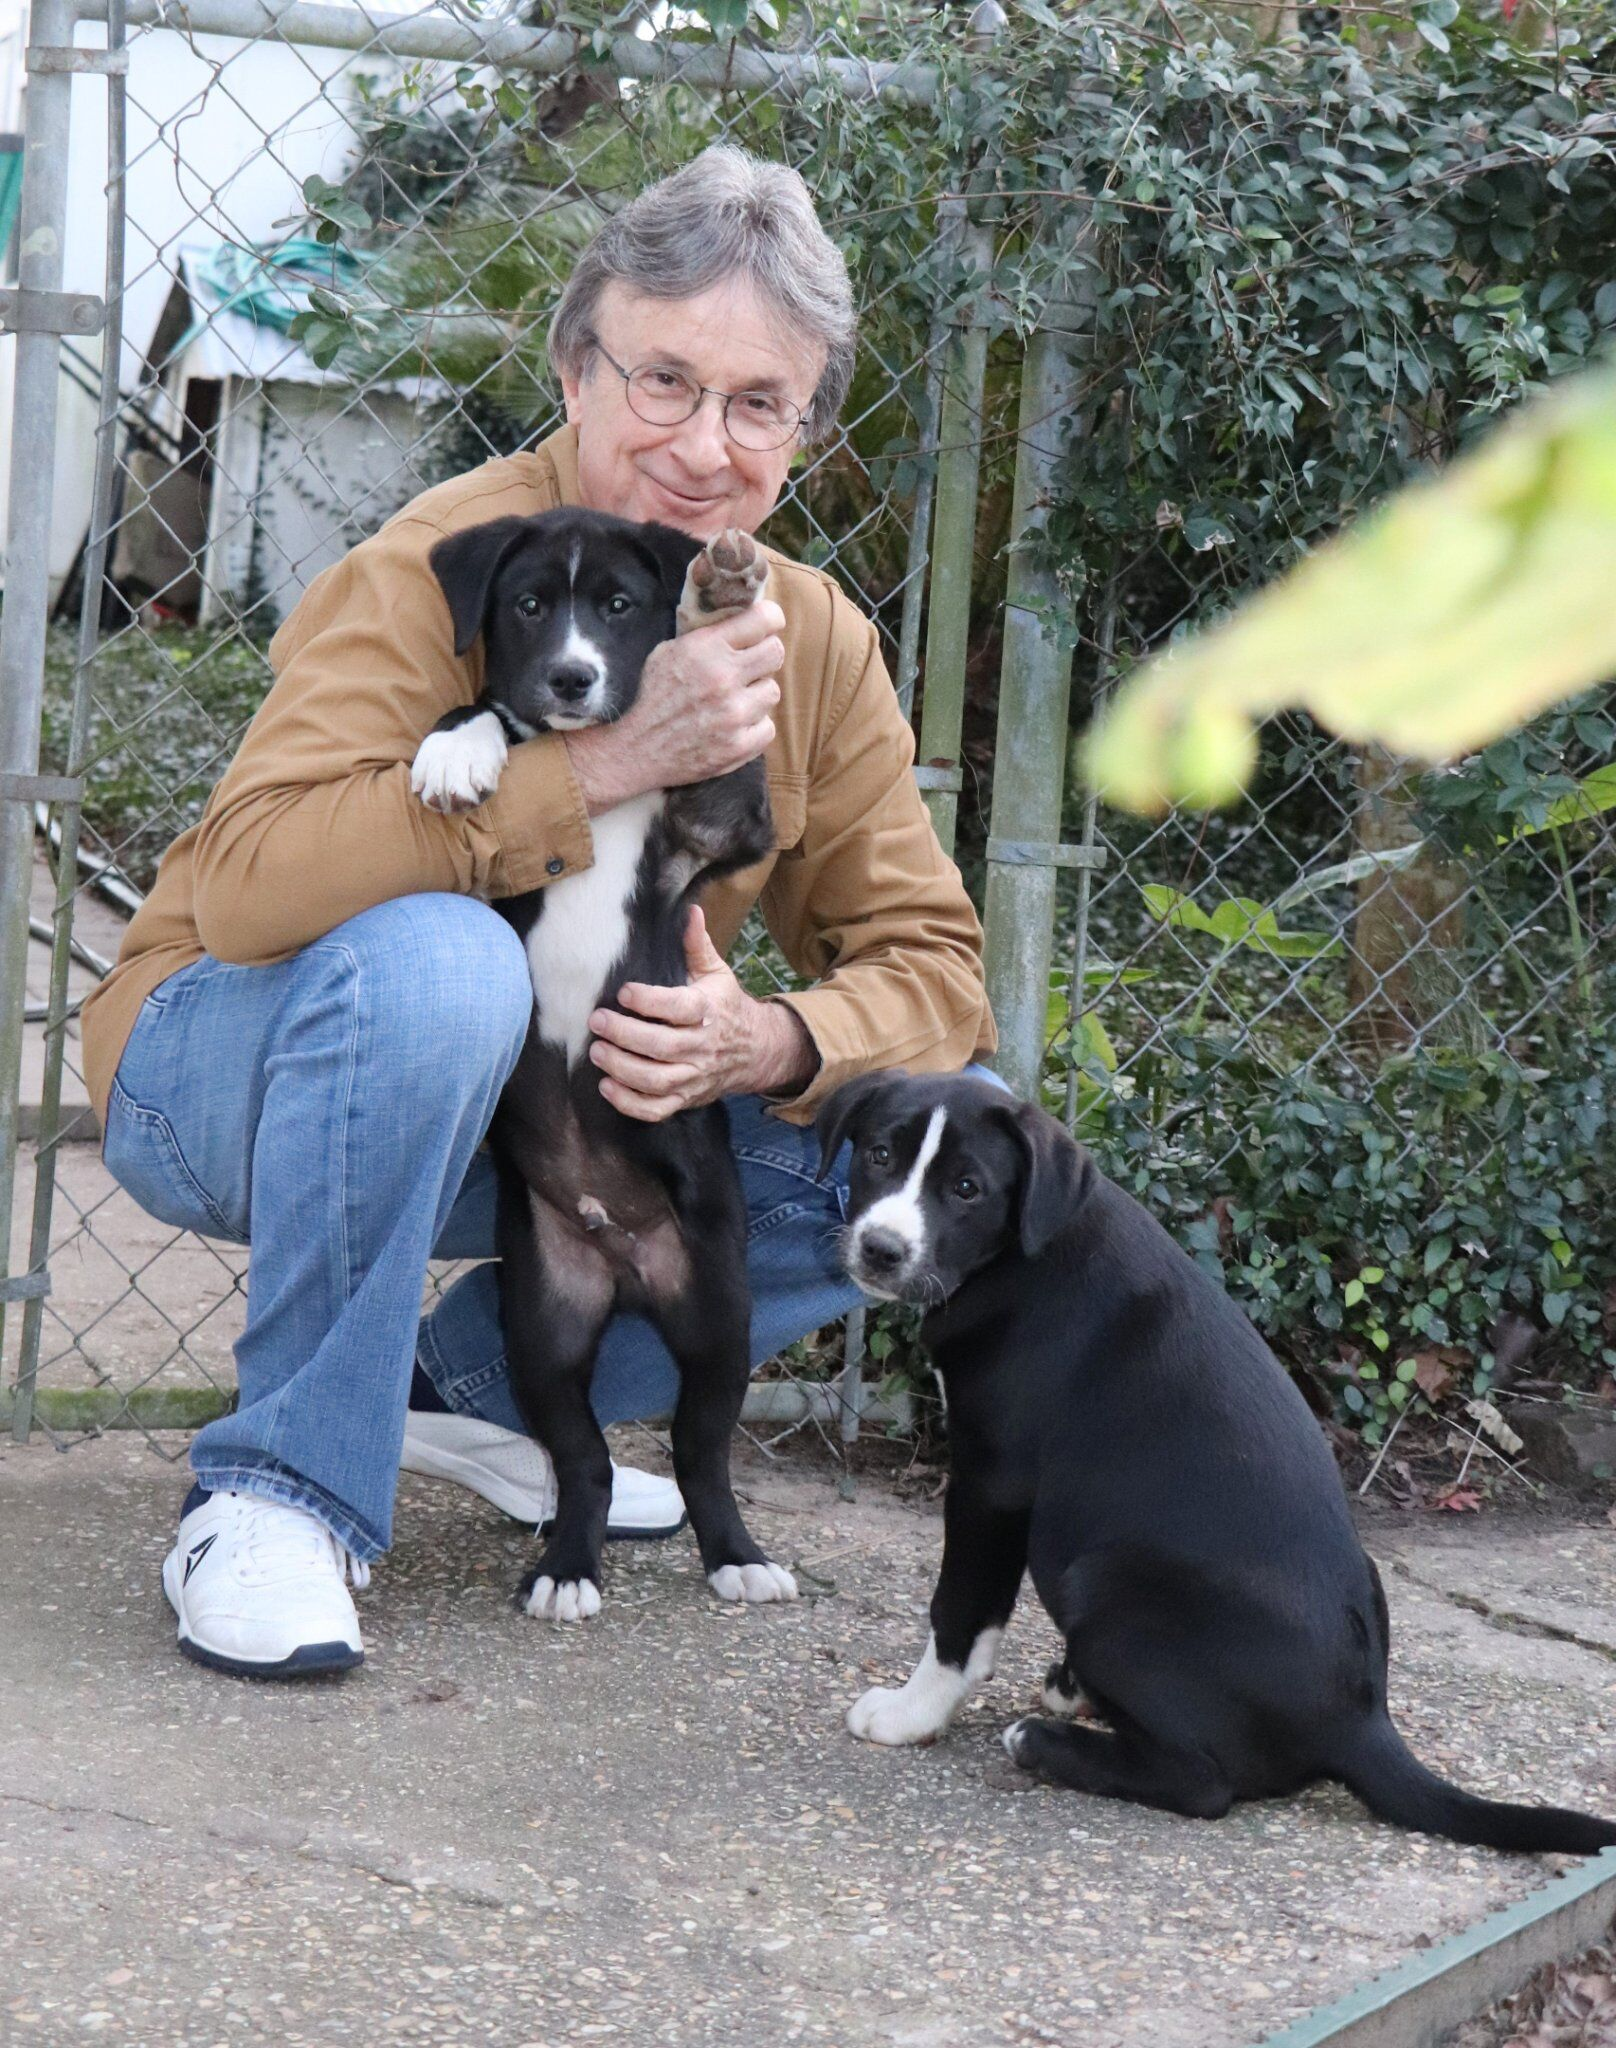 Steve with new puppies Cosmo and Luna